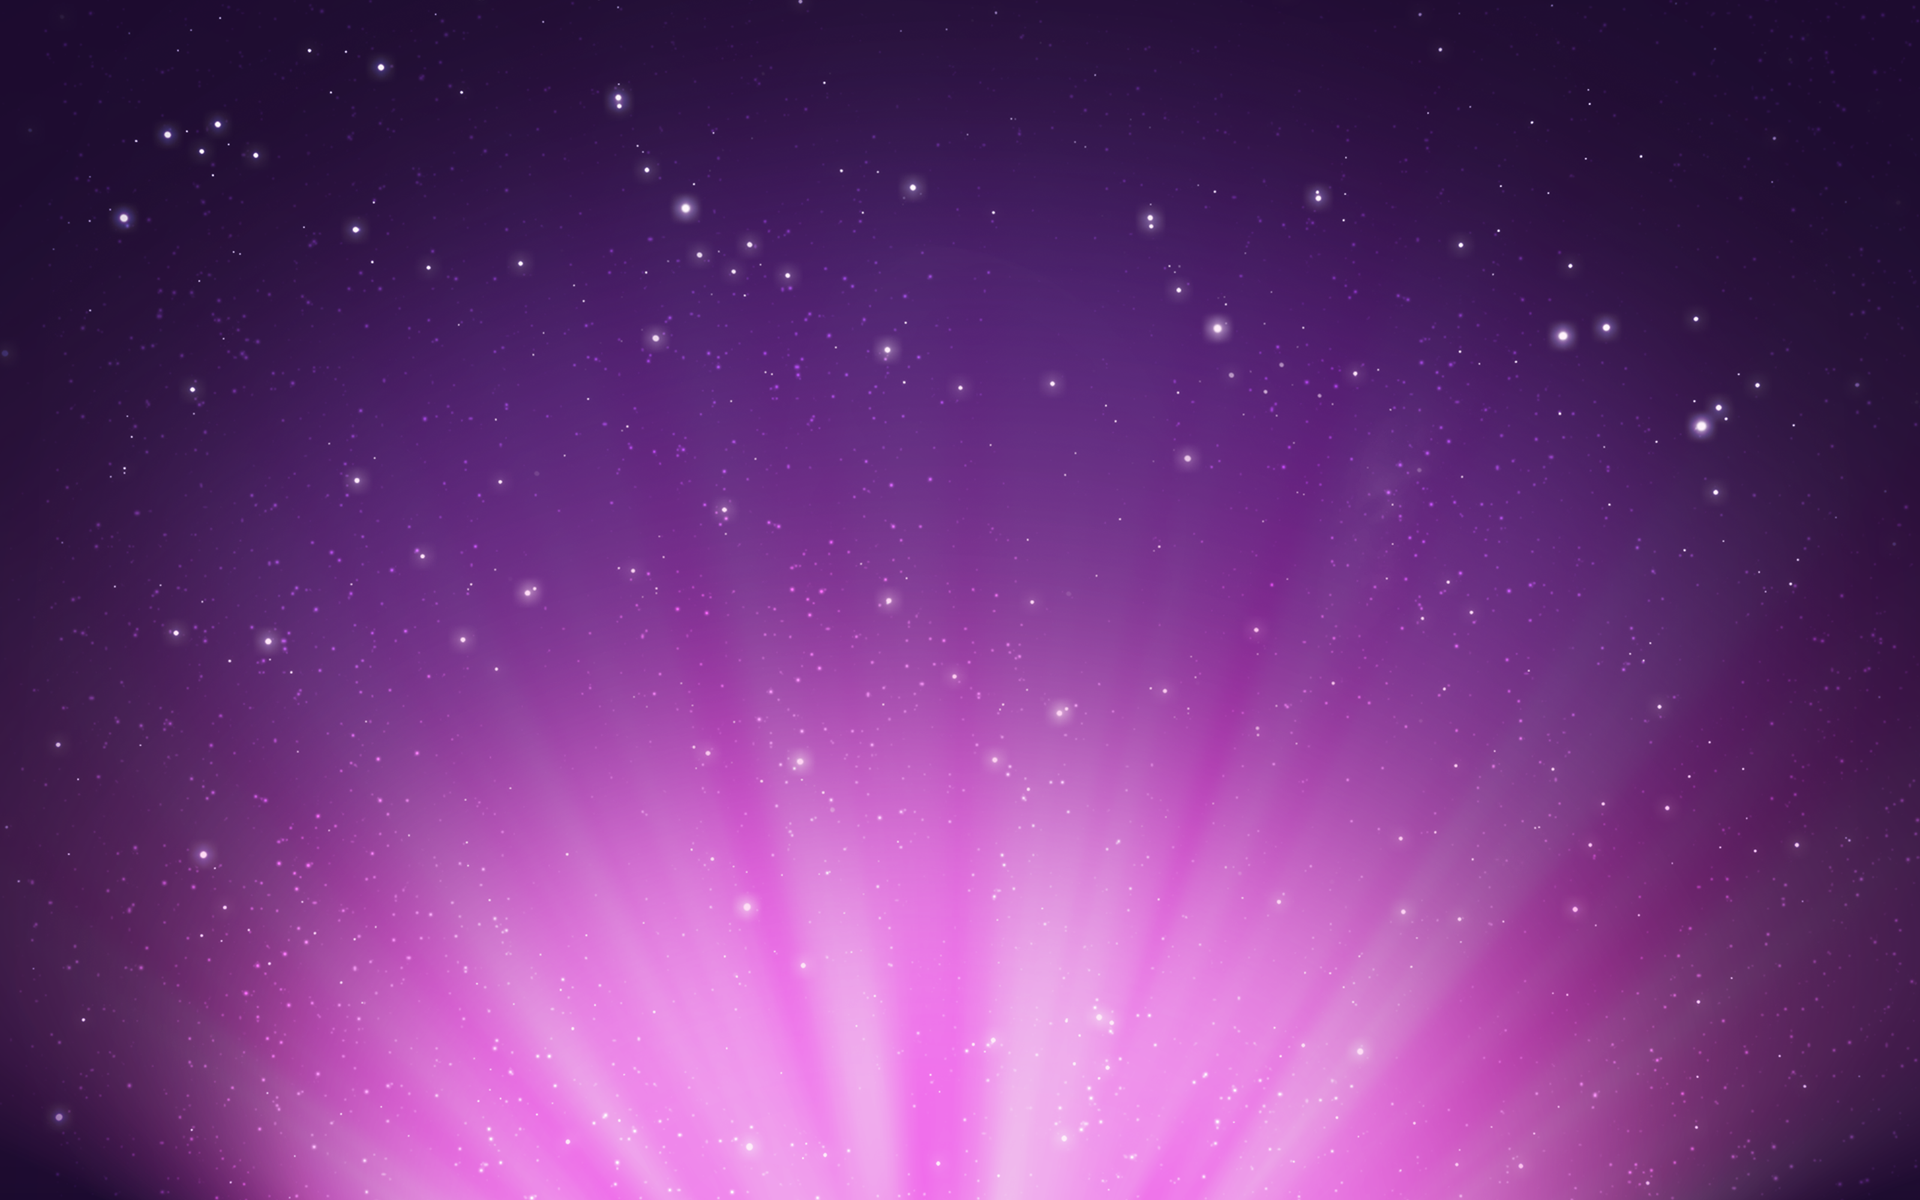 Purple backgrounds wallpapers backgrounds popular purple black and purple stars backgrounds purple glow stars background altavistaventures Image collections